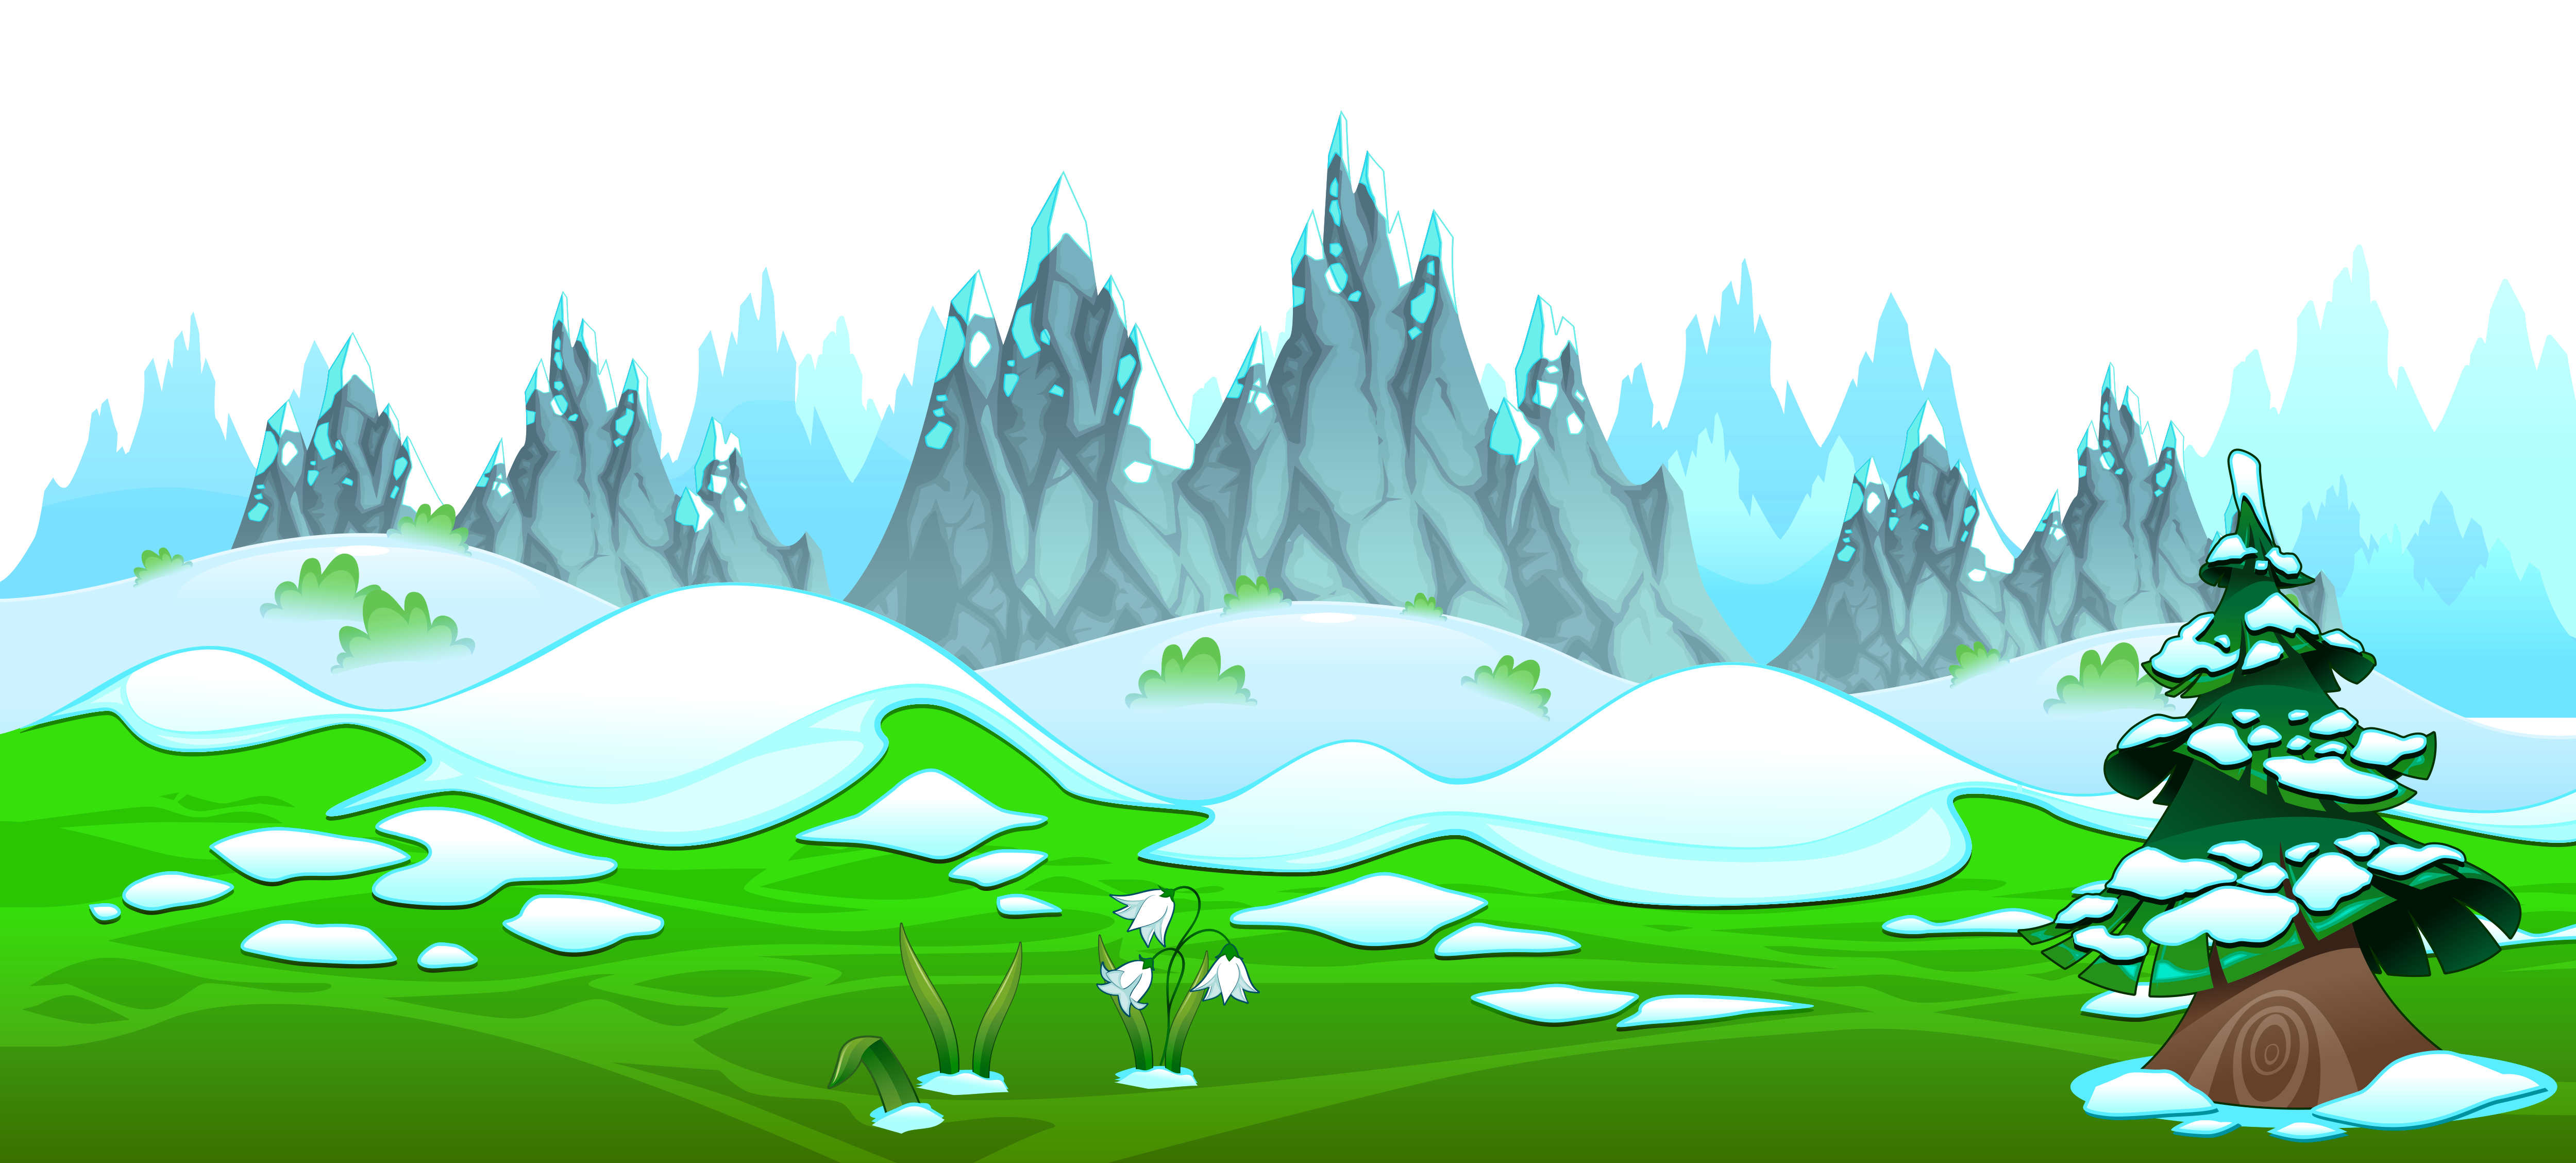 Early Spring with Icy Mountains Ground PNG Clipart.